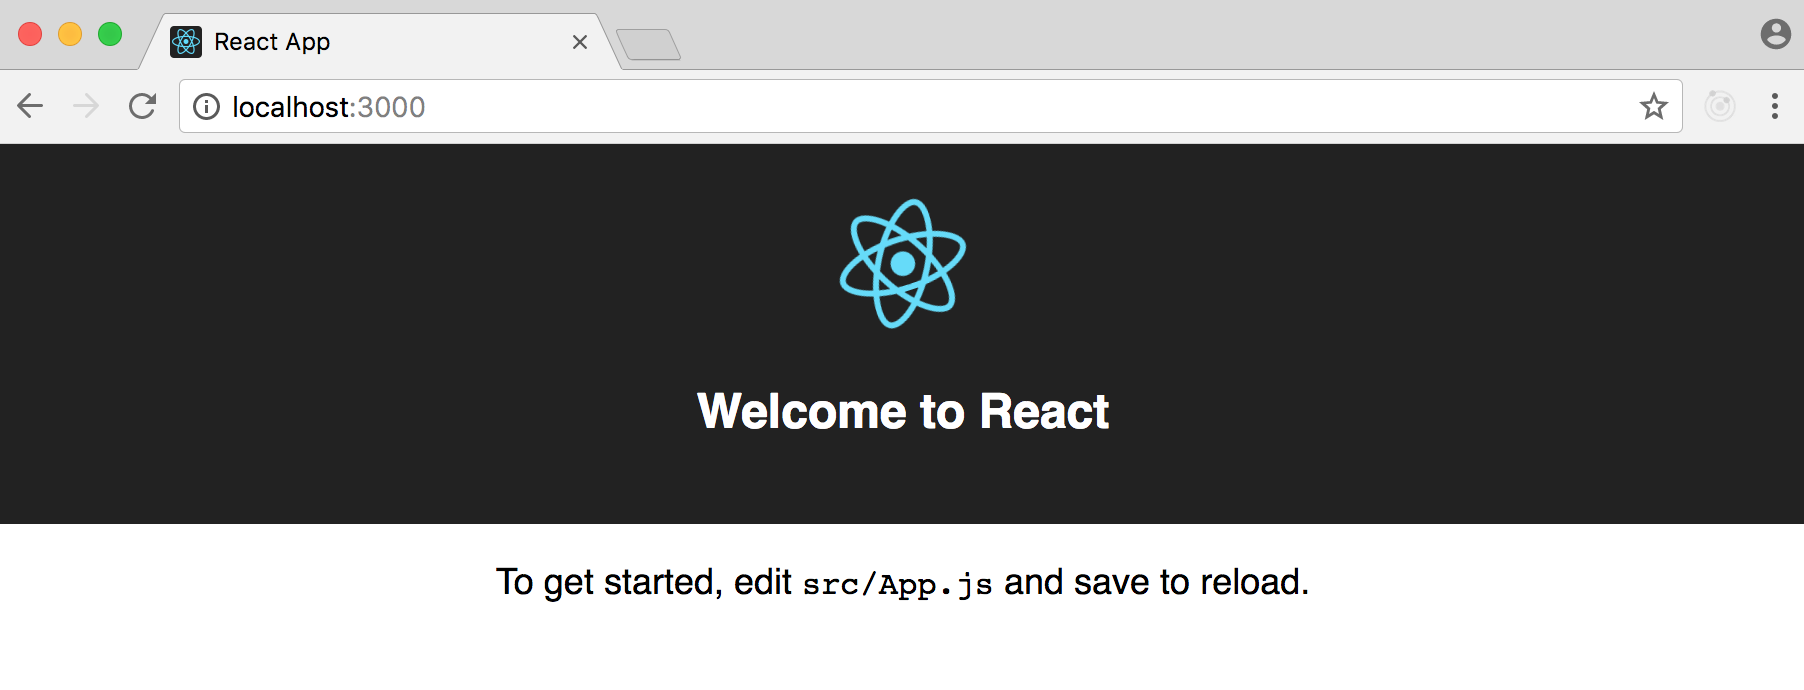 Django Rest Framework with React Tutorial - William Vincent